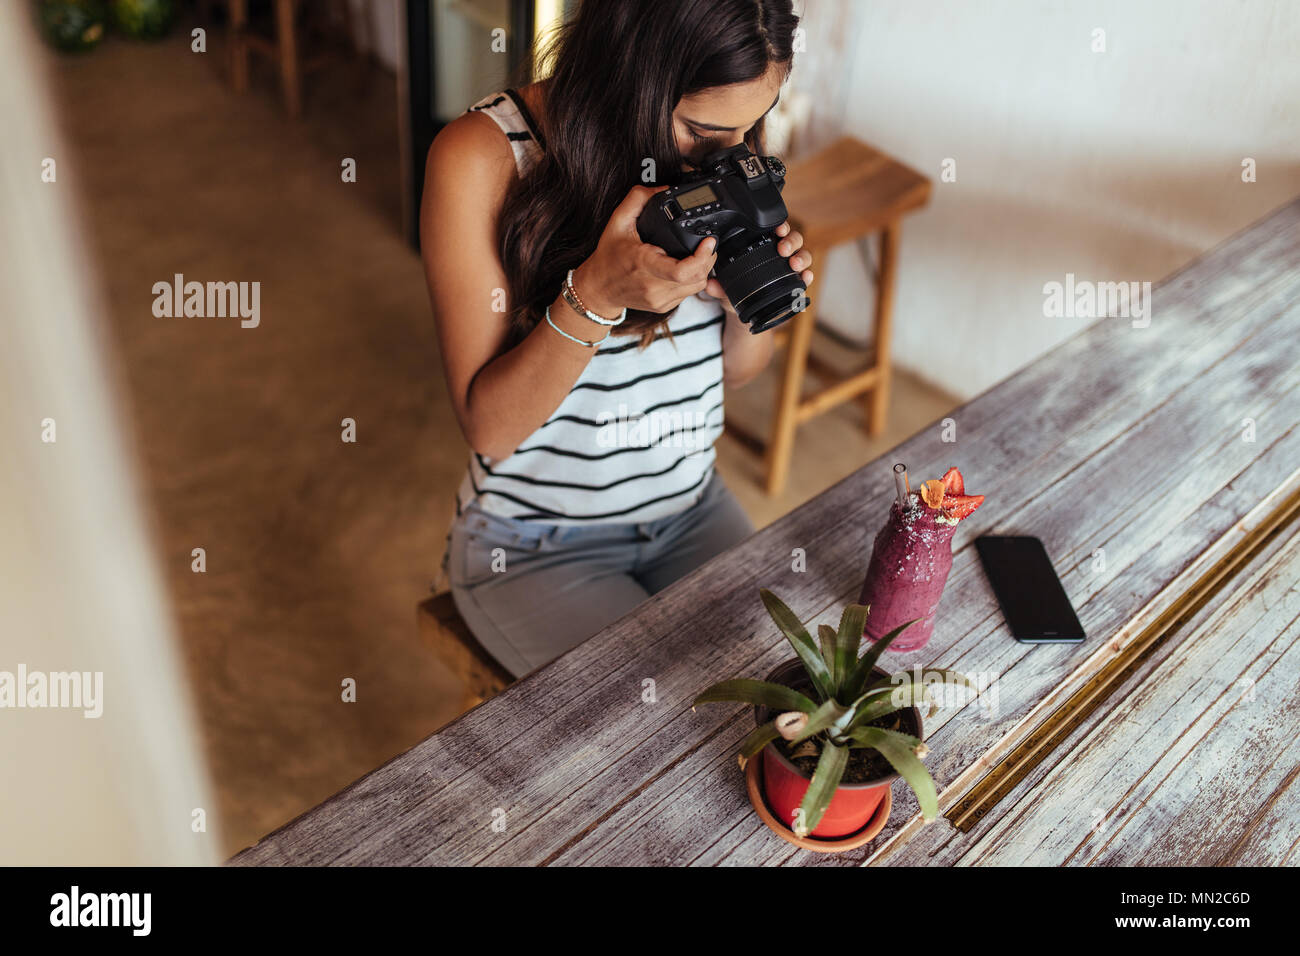 Woman taking photos of a smoothie placed beside a flower pot using a professional camera for her food blog. Food blogger shooting photos for her blog  - Stock Image